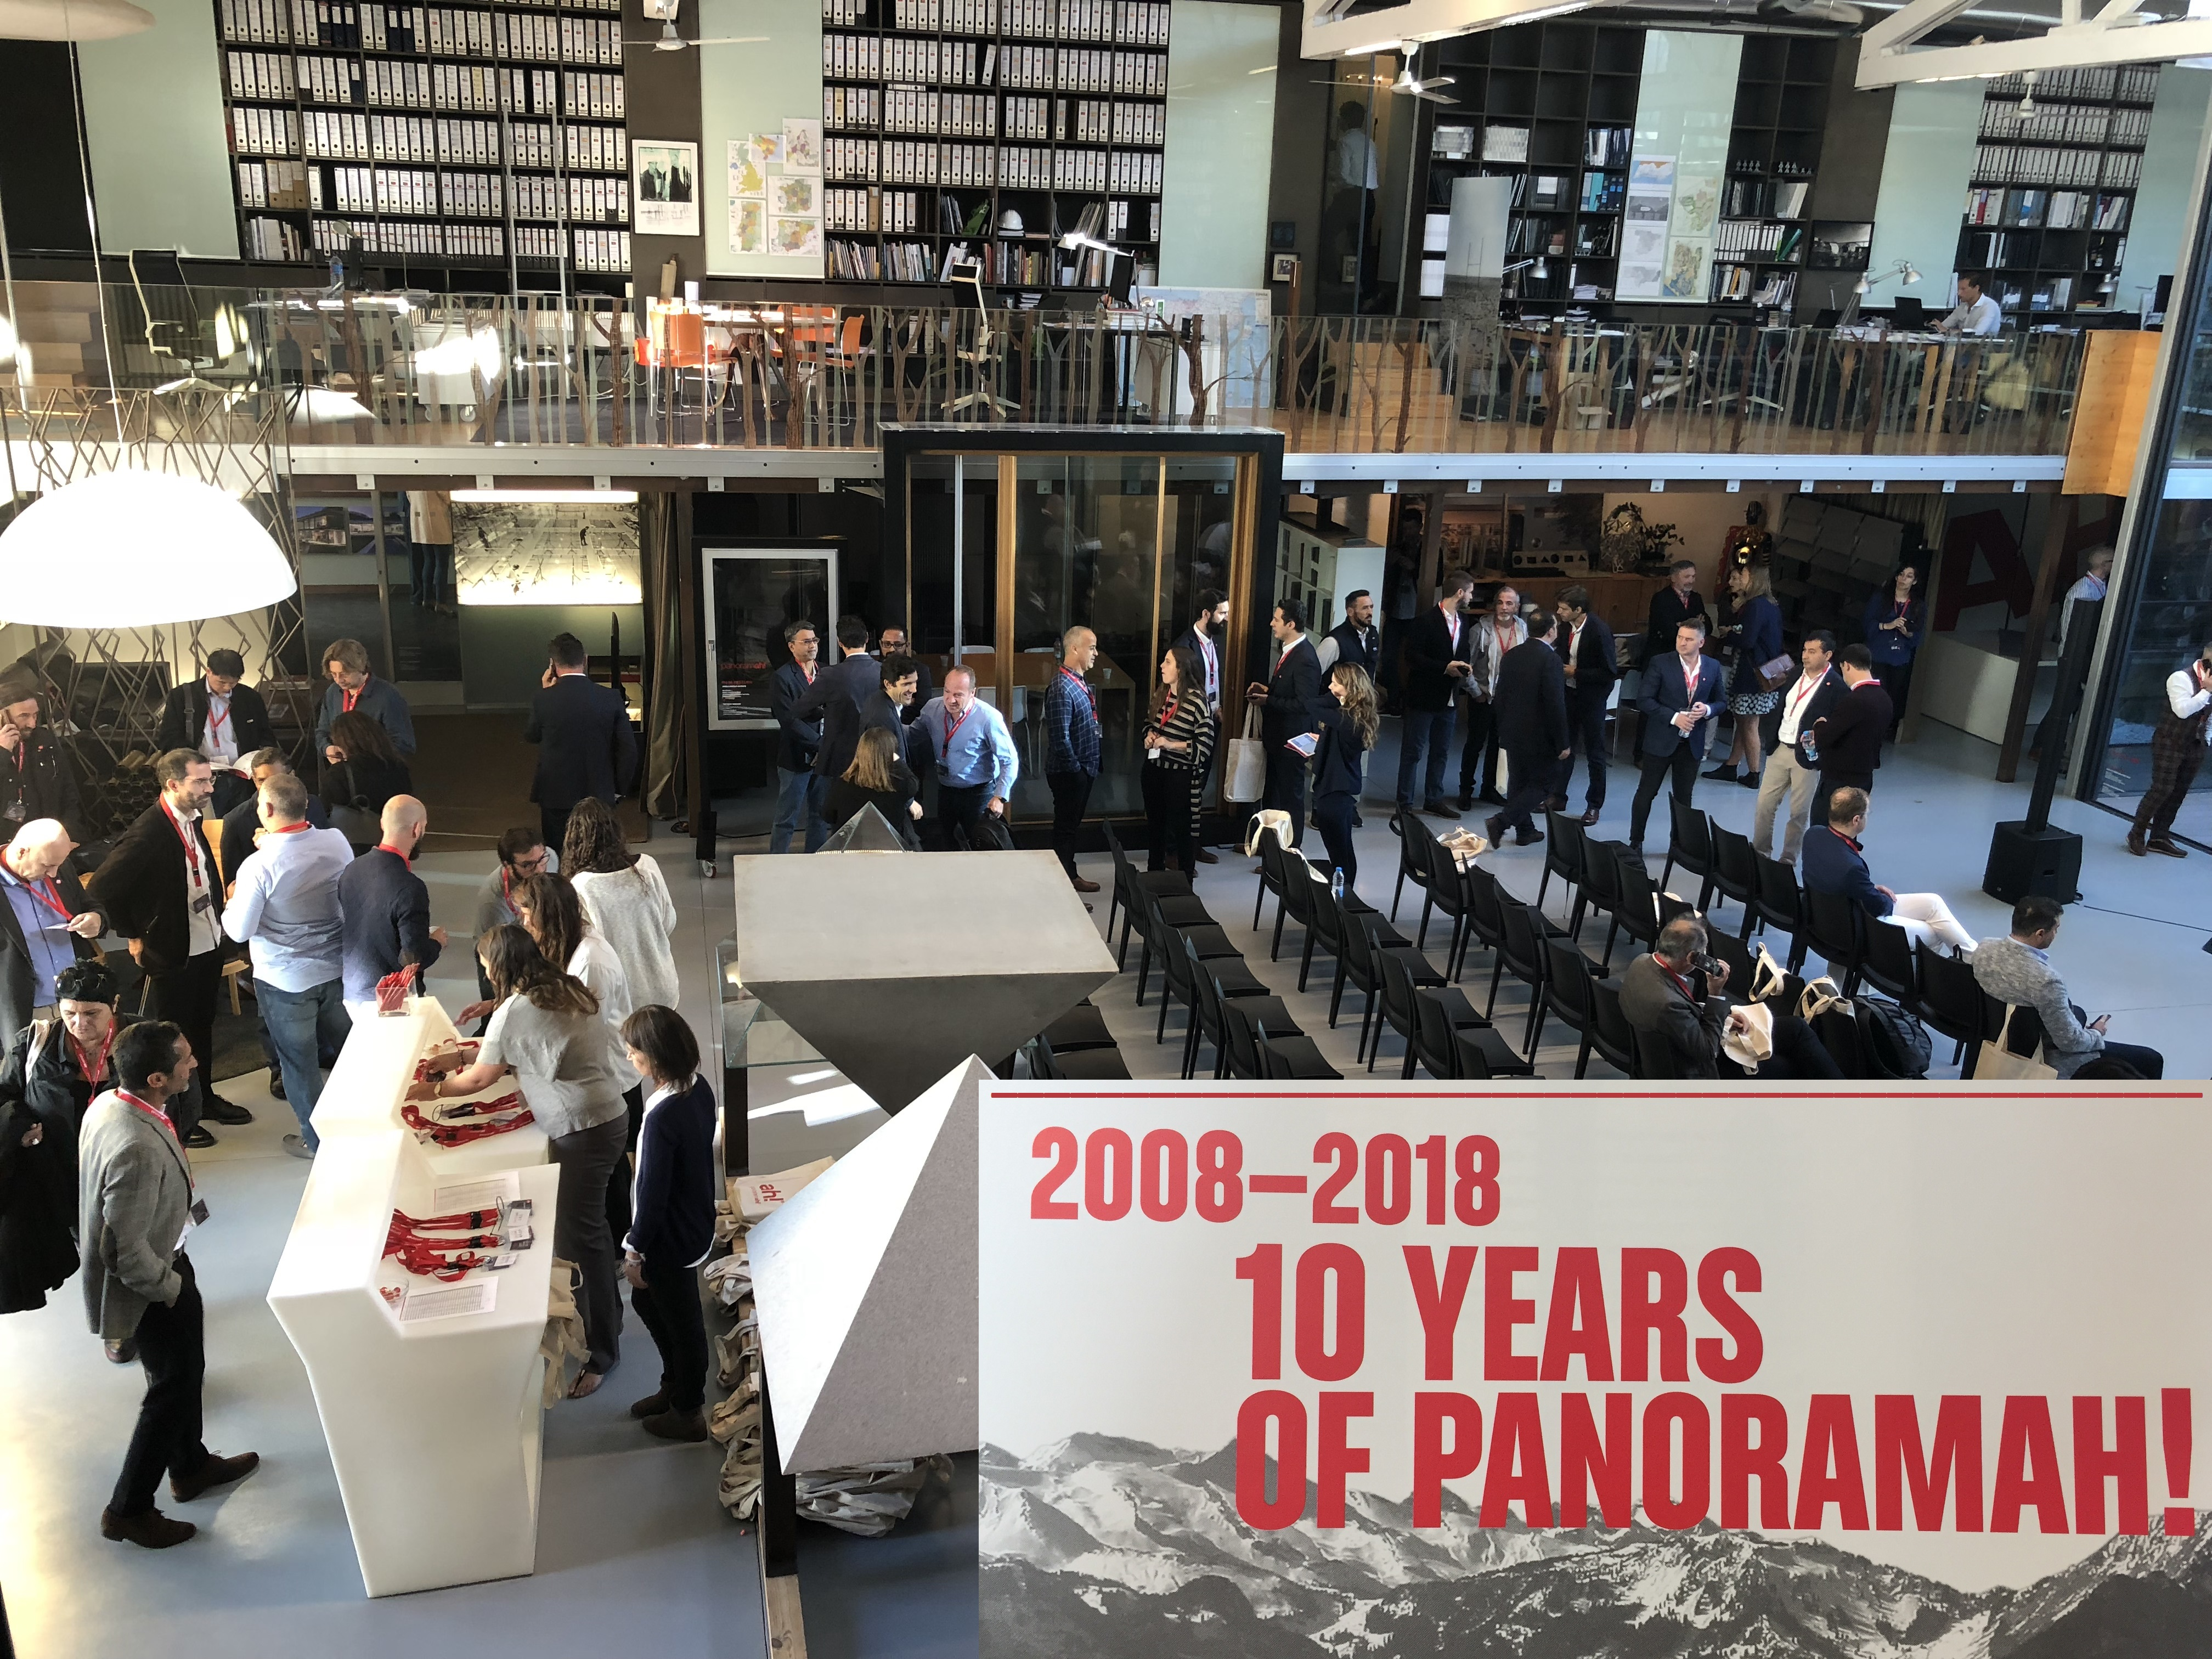 Congratulations to our friends at PanoramAH! for their 10 Year Anniversary